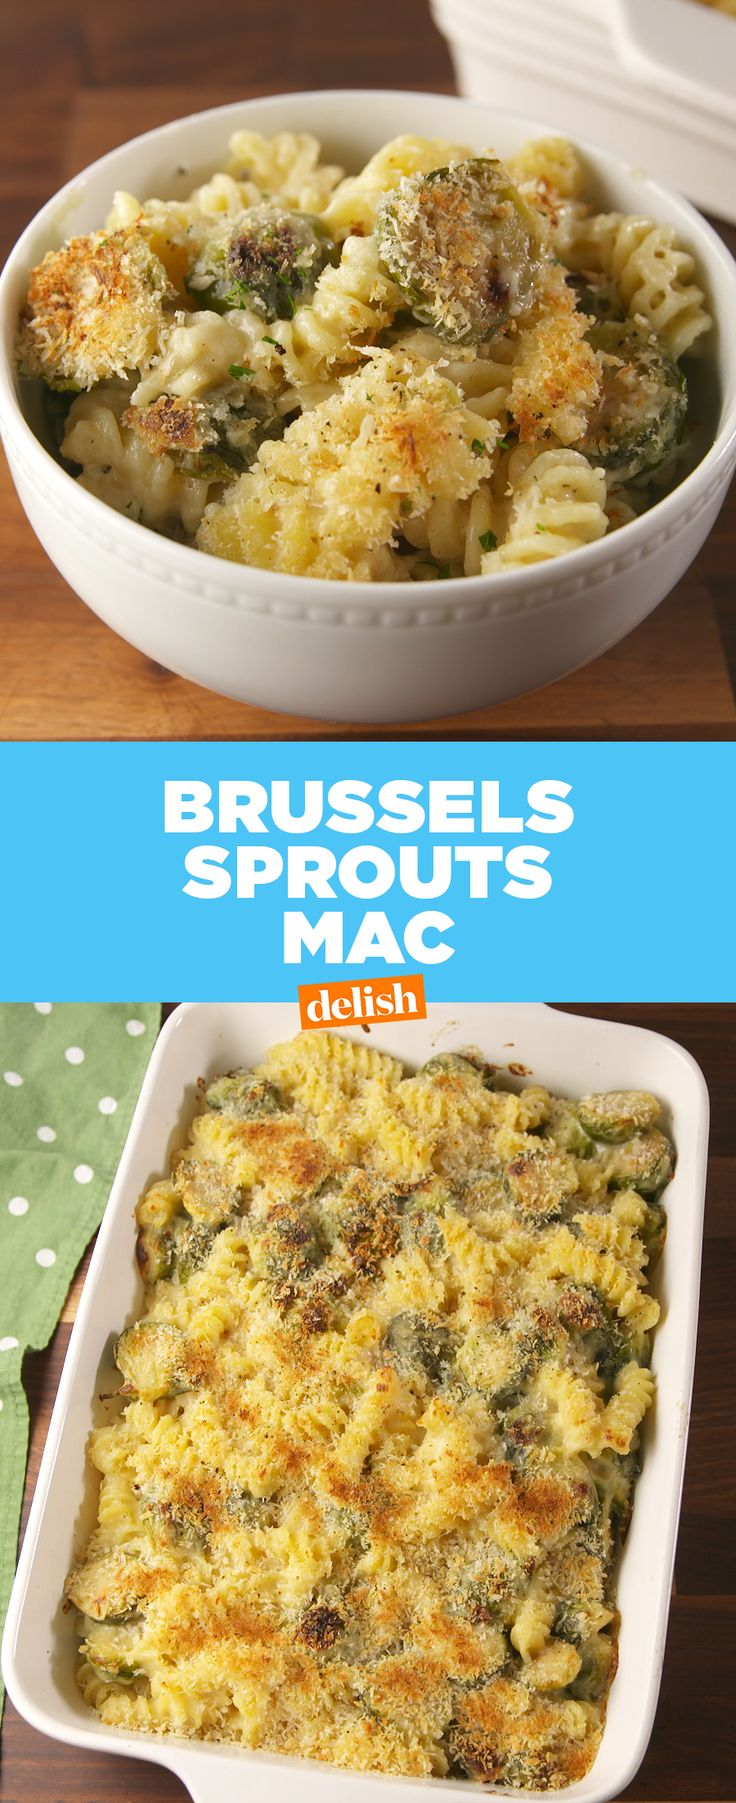 Mac 'n cheese + Brussels sprouts